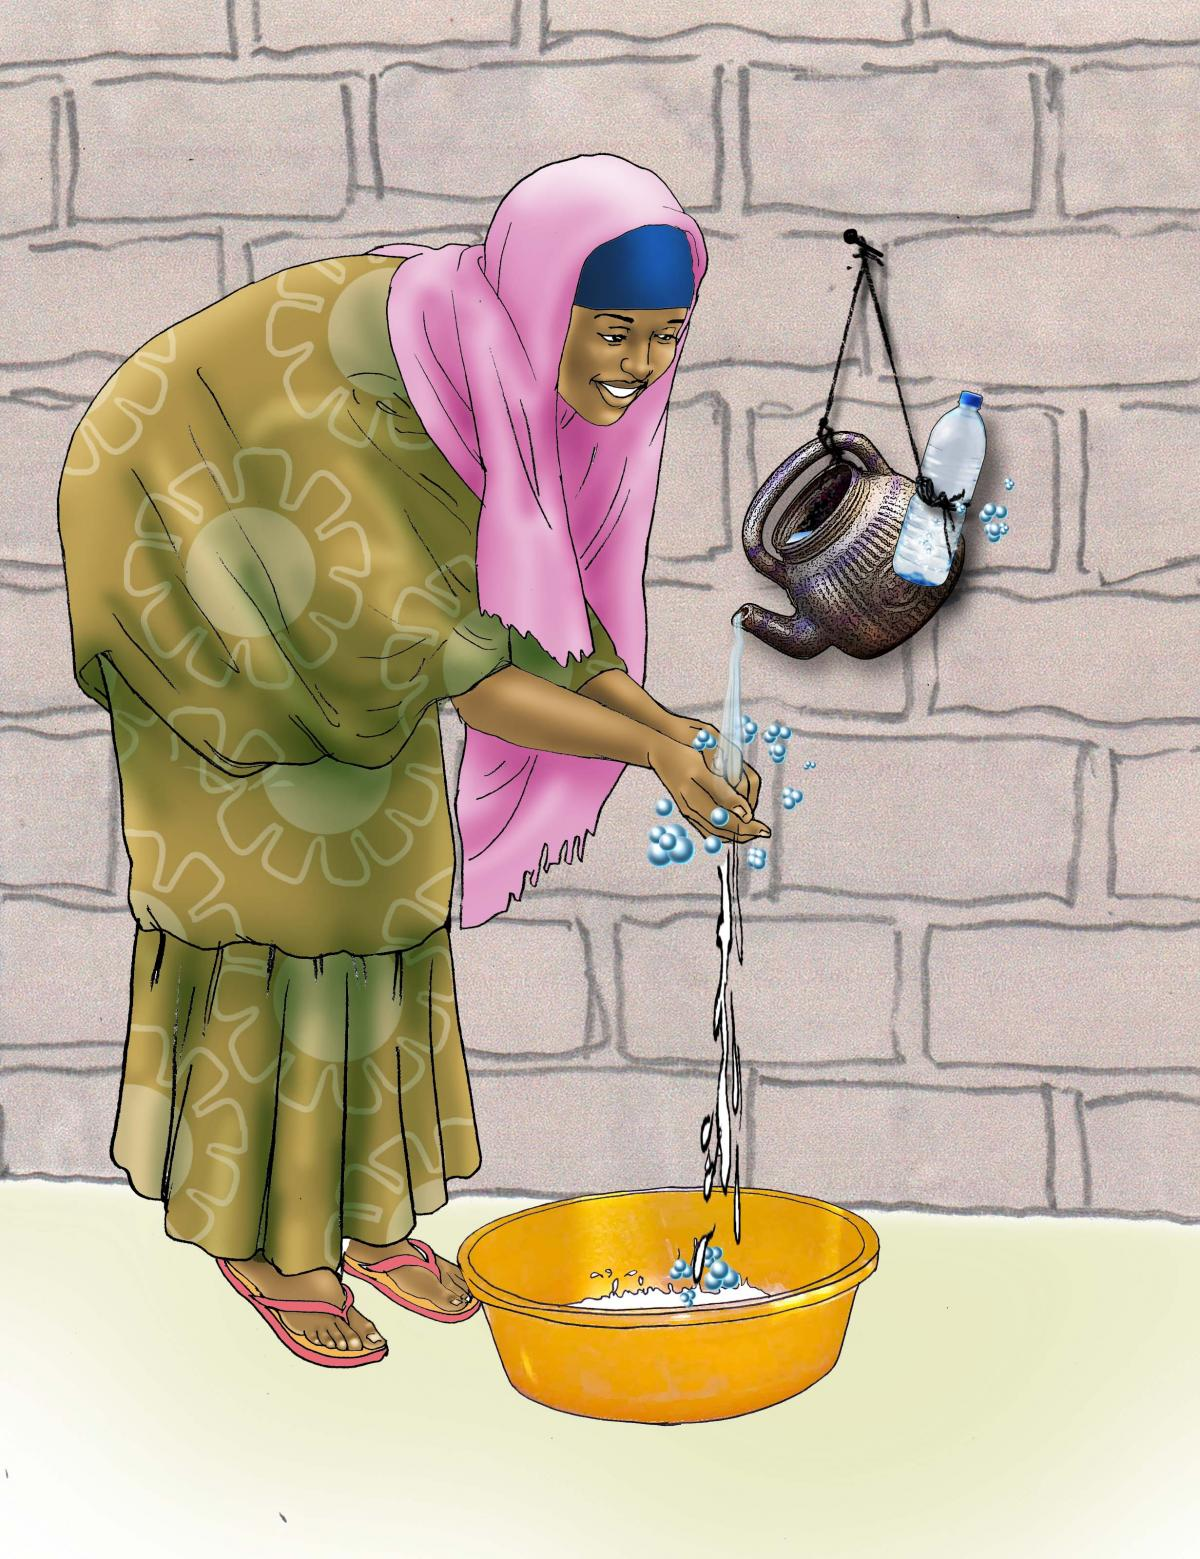 Sanitation - Woman washing hands - 06B - Niger